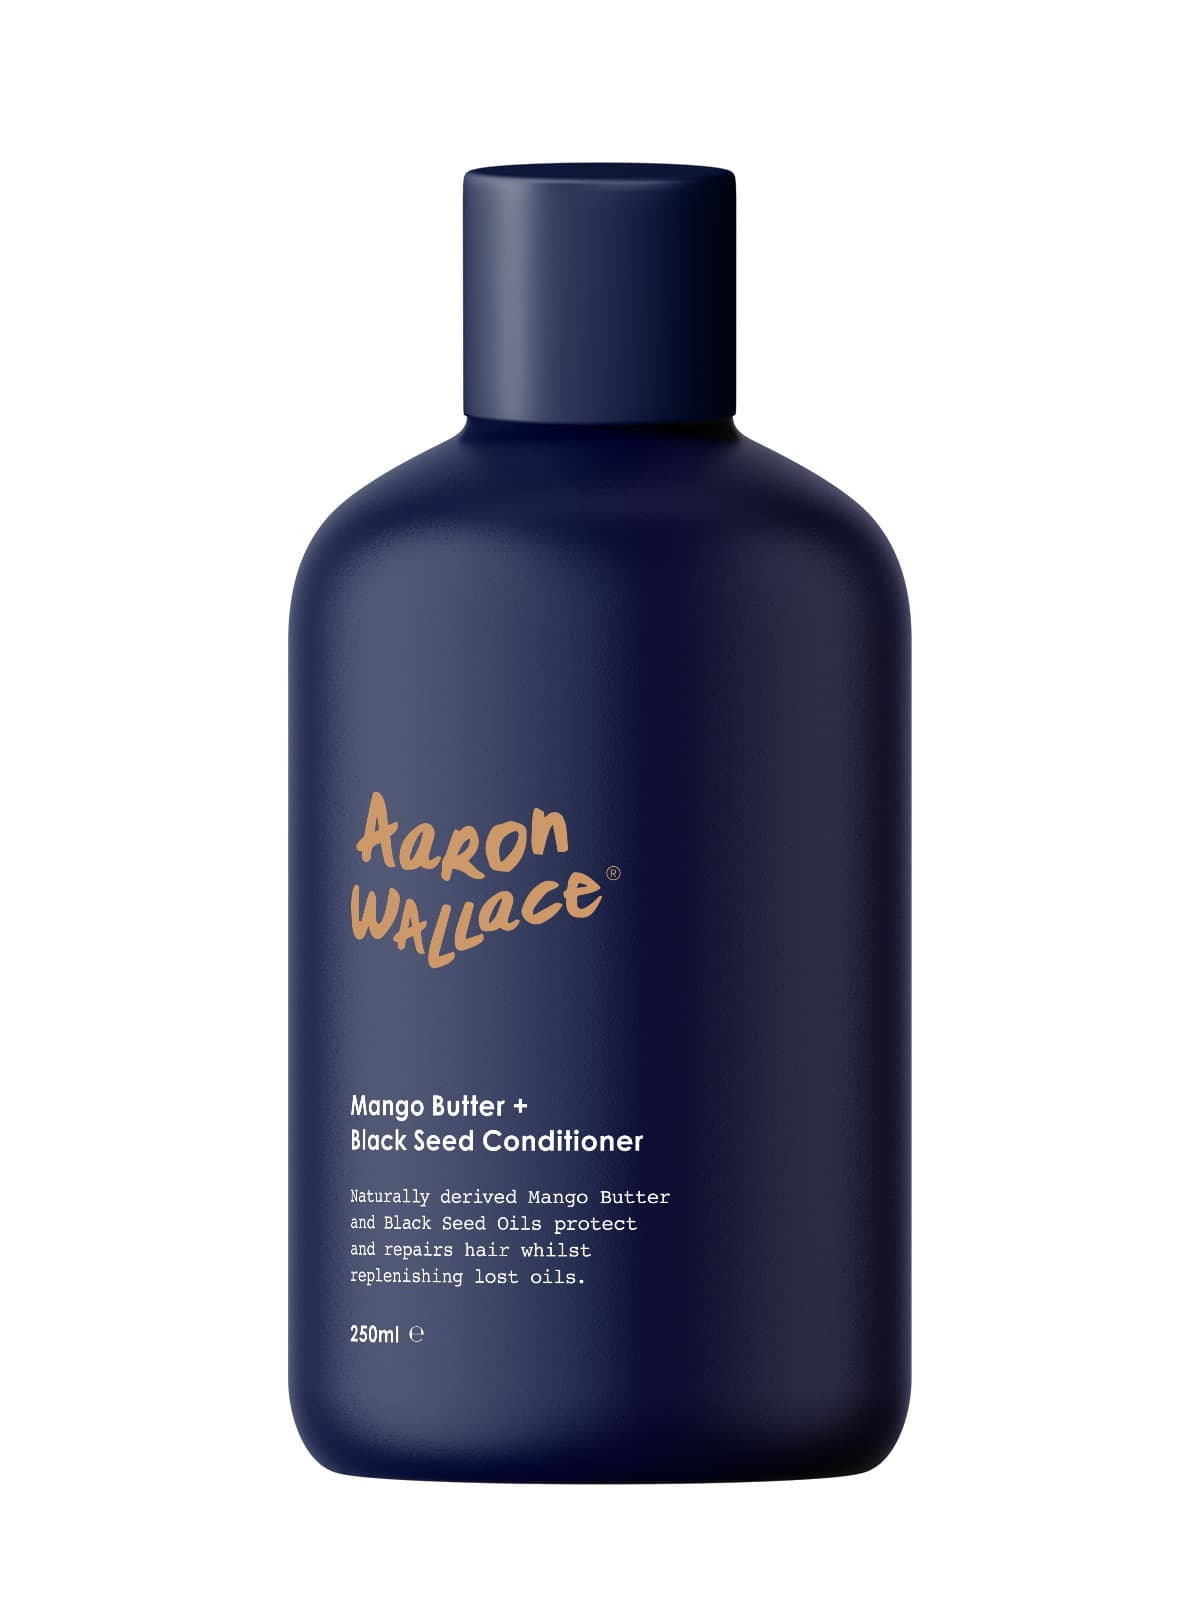 Aaron Wallace Mango Butter + Black Seed Conditioner Beauty Supply store, all natural products for men. The wh shop is the sephora for black owned brands